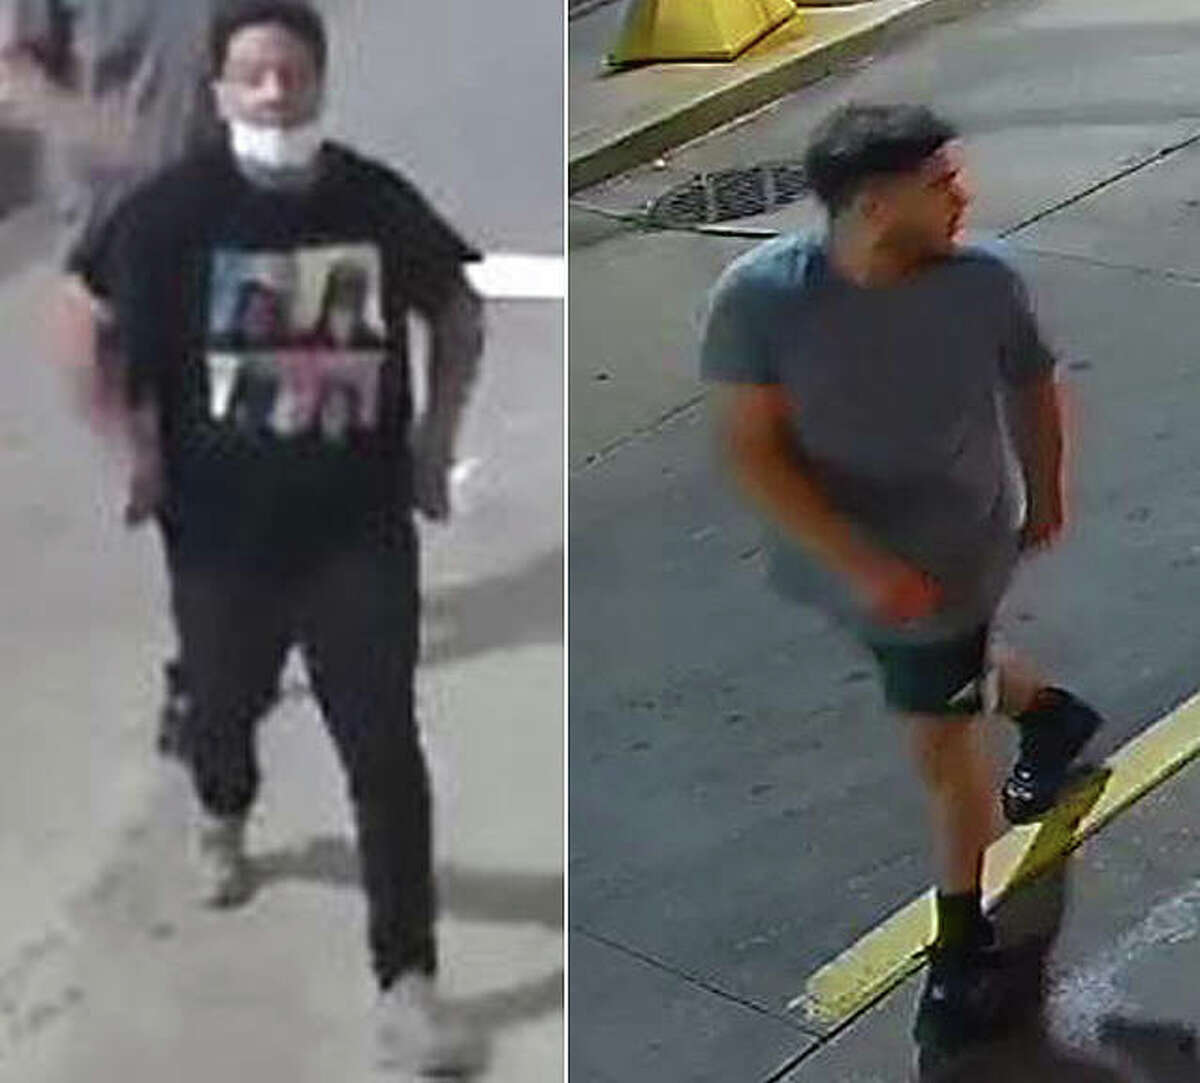 Police are trying to identify two men, seen on surveillance video, who they believe might have information about a weekend assault case.